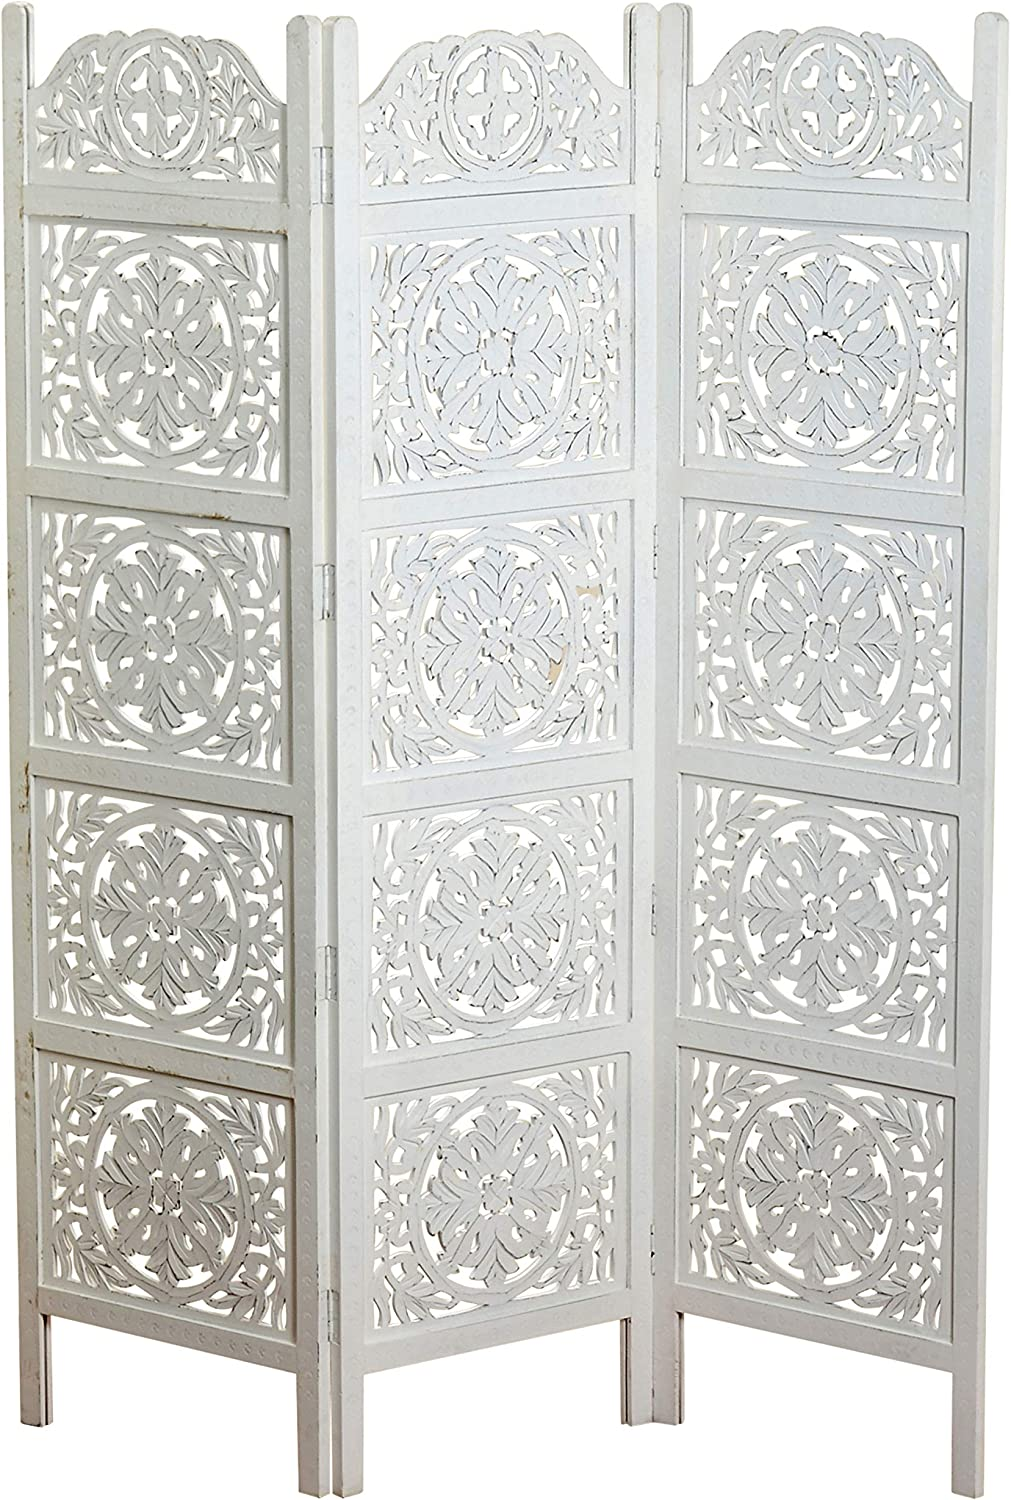 Heritage Home Screen Farmhouse Room Indefinitely Divider Style Magno Clearance SALE! Limited time! Vintage